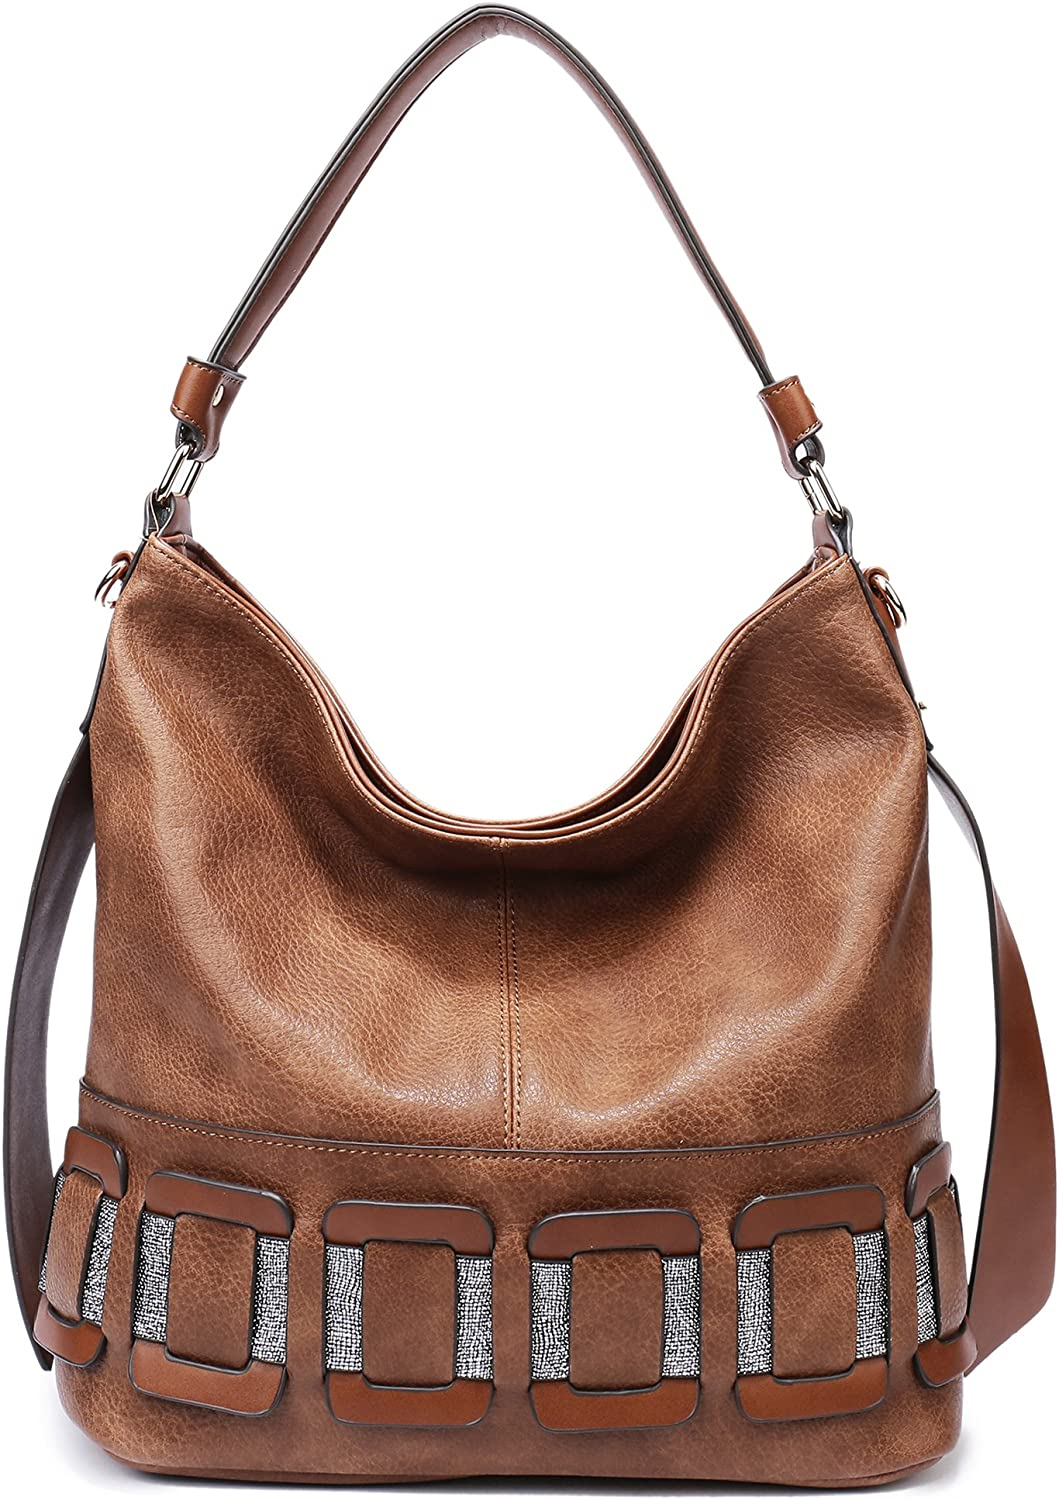 Leather Hobo Handbag Women Large New Designer Shouder Totes, Soye Tophandle Bag